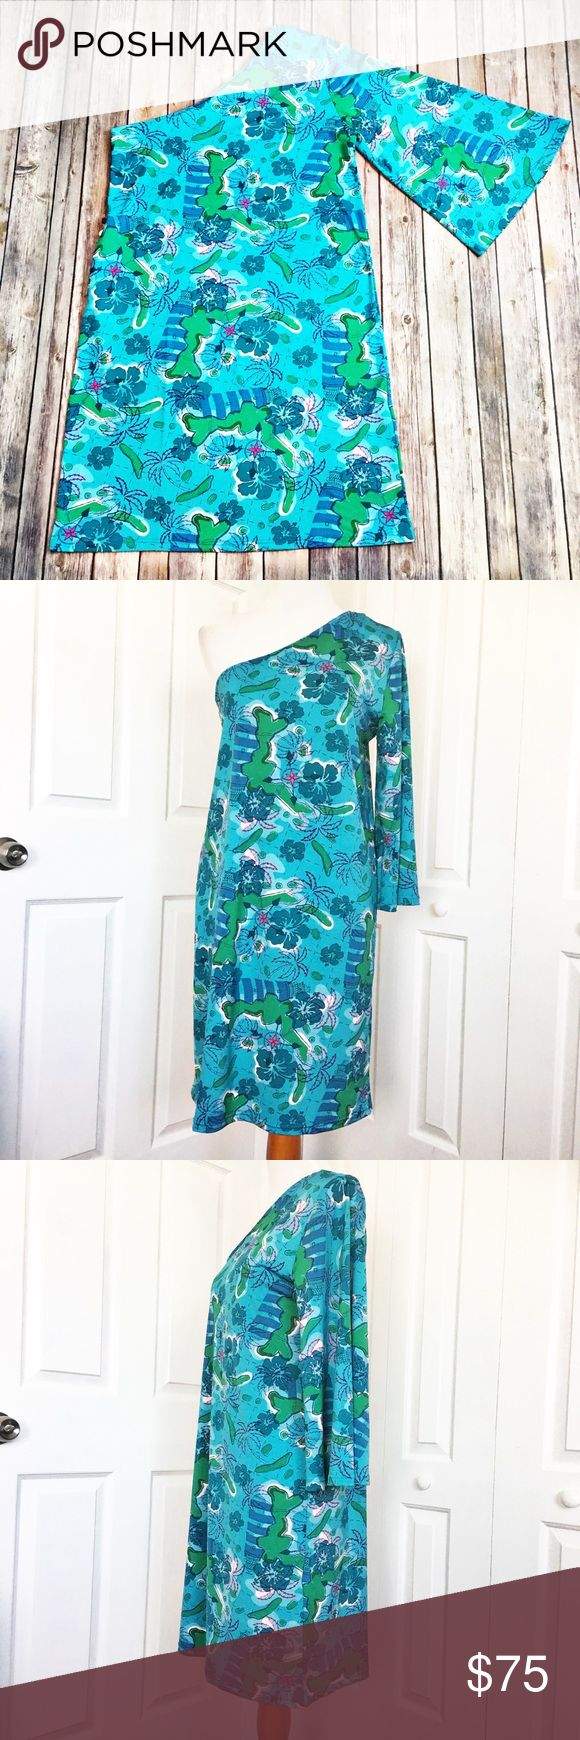 """Tracy Negoshian Dress Great dress by Tracy Negoshian.  Aqua in color with an all over lighthouse/floral print.  Has zippered side pocket with gold hardware. Material is 95% polyester and 5% elastane.  Measurements laid flat and unstretched: bust 18"""", waist 19 1/2"""", hip 21"""", and length from top of shoulder to hem 38 1/2"""".  EUC. Tracy Negoshian Dresses One Shoulder"""